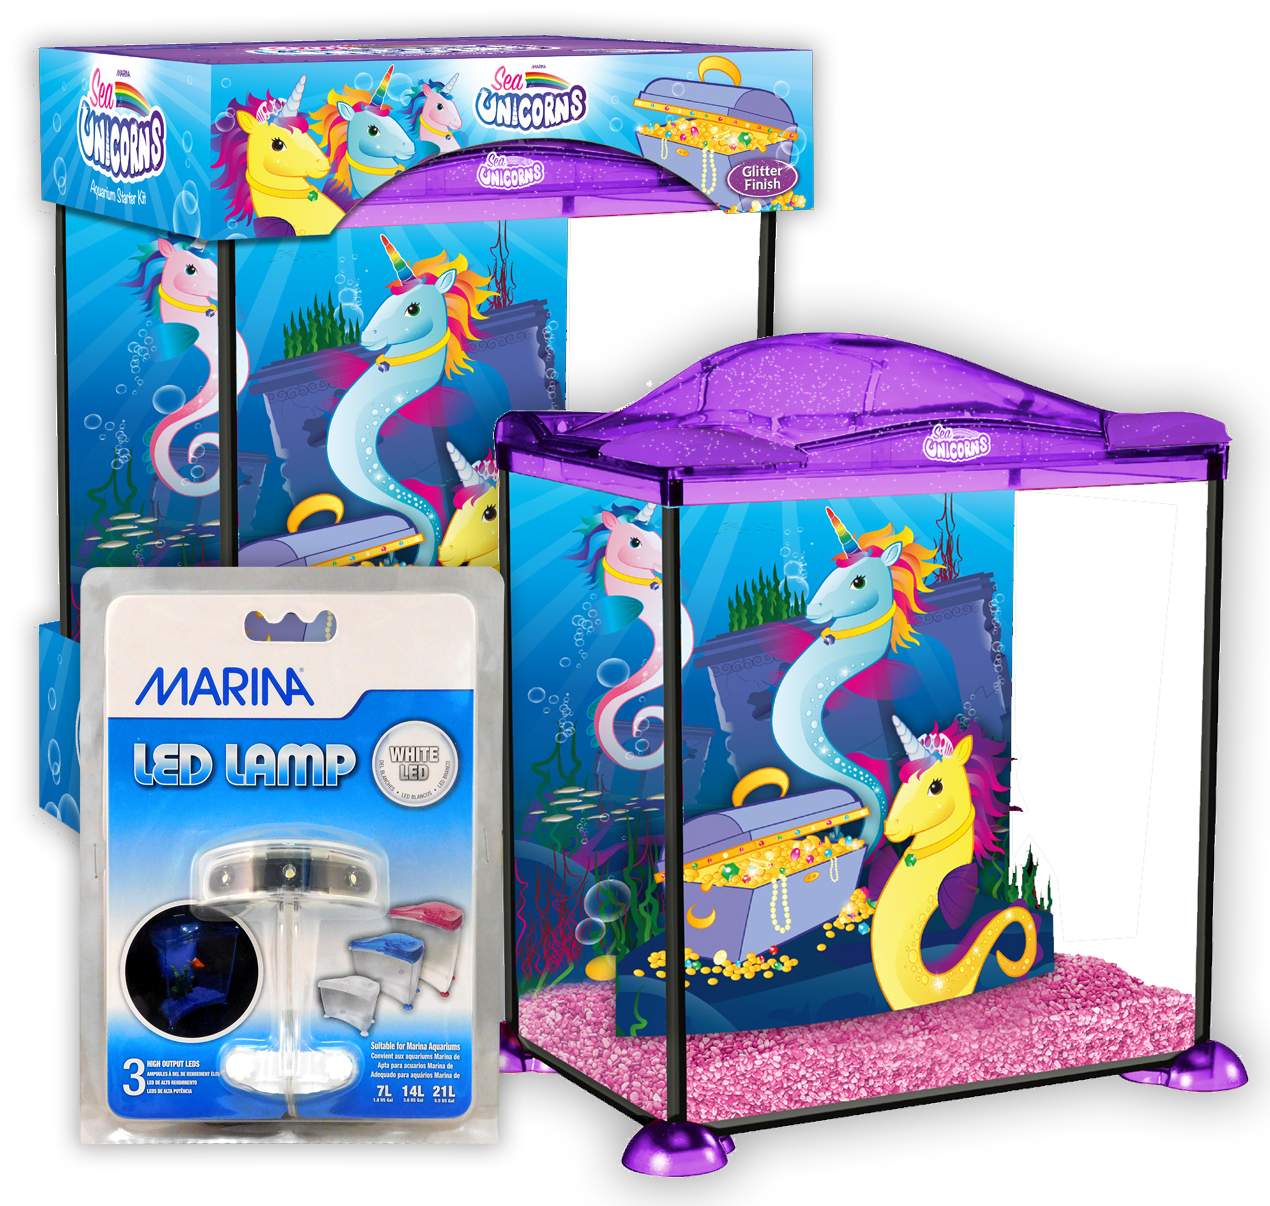 Marina Sea Unicorns Aquarium 17l Starter Kids Fish Tank